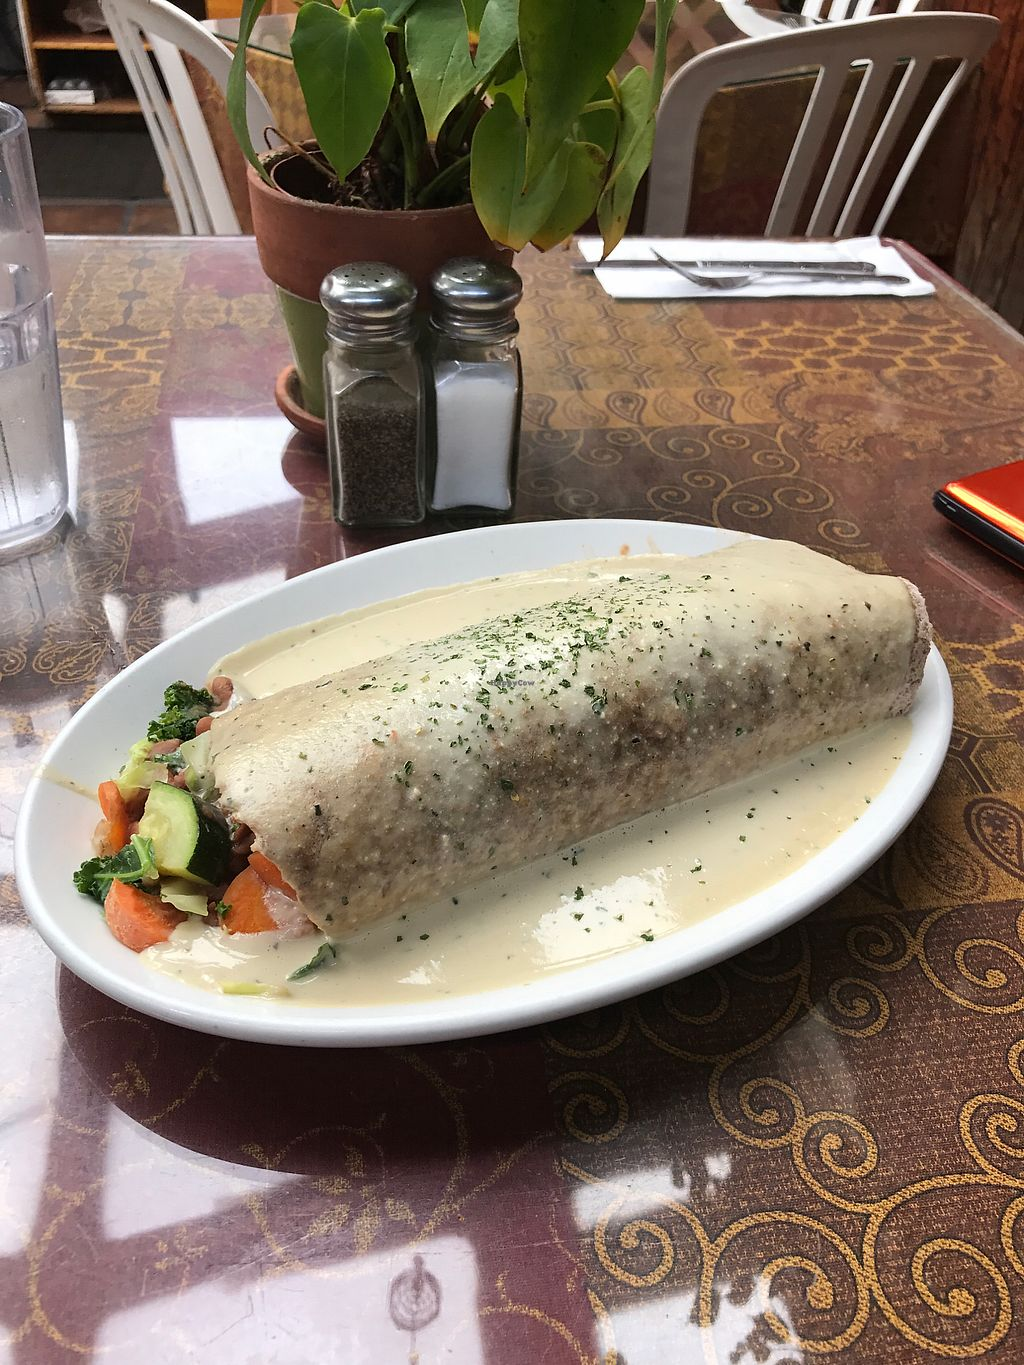 """Photo of The Spot Cafe  by <a href=""""/members/profile/koda668"""">koda668</a> <br/>Savory Vegetable Burrito  <br/> July 19, 2017  - <a href='/contact/abuse/image/84808/282231'>Report</a>"""